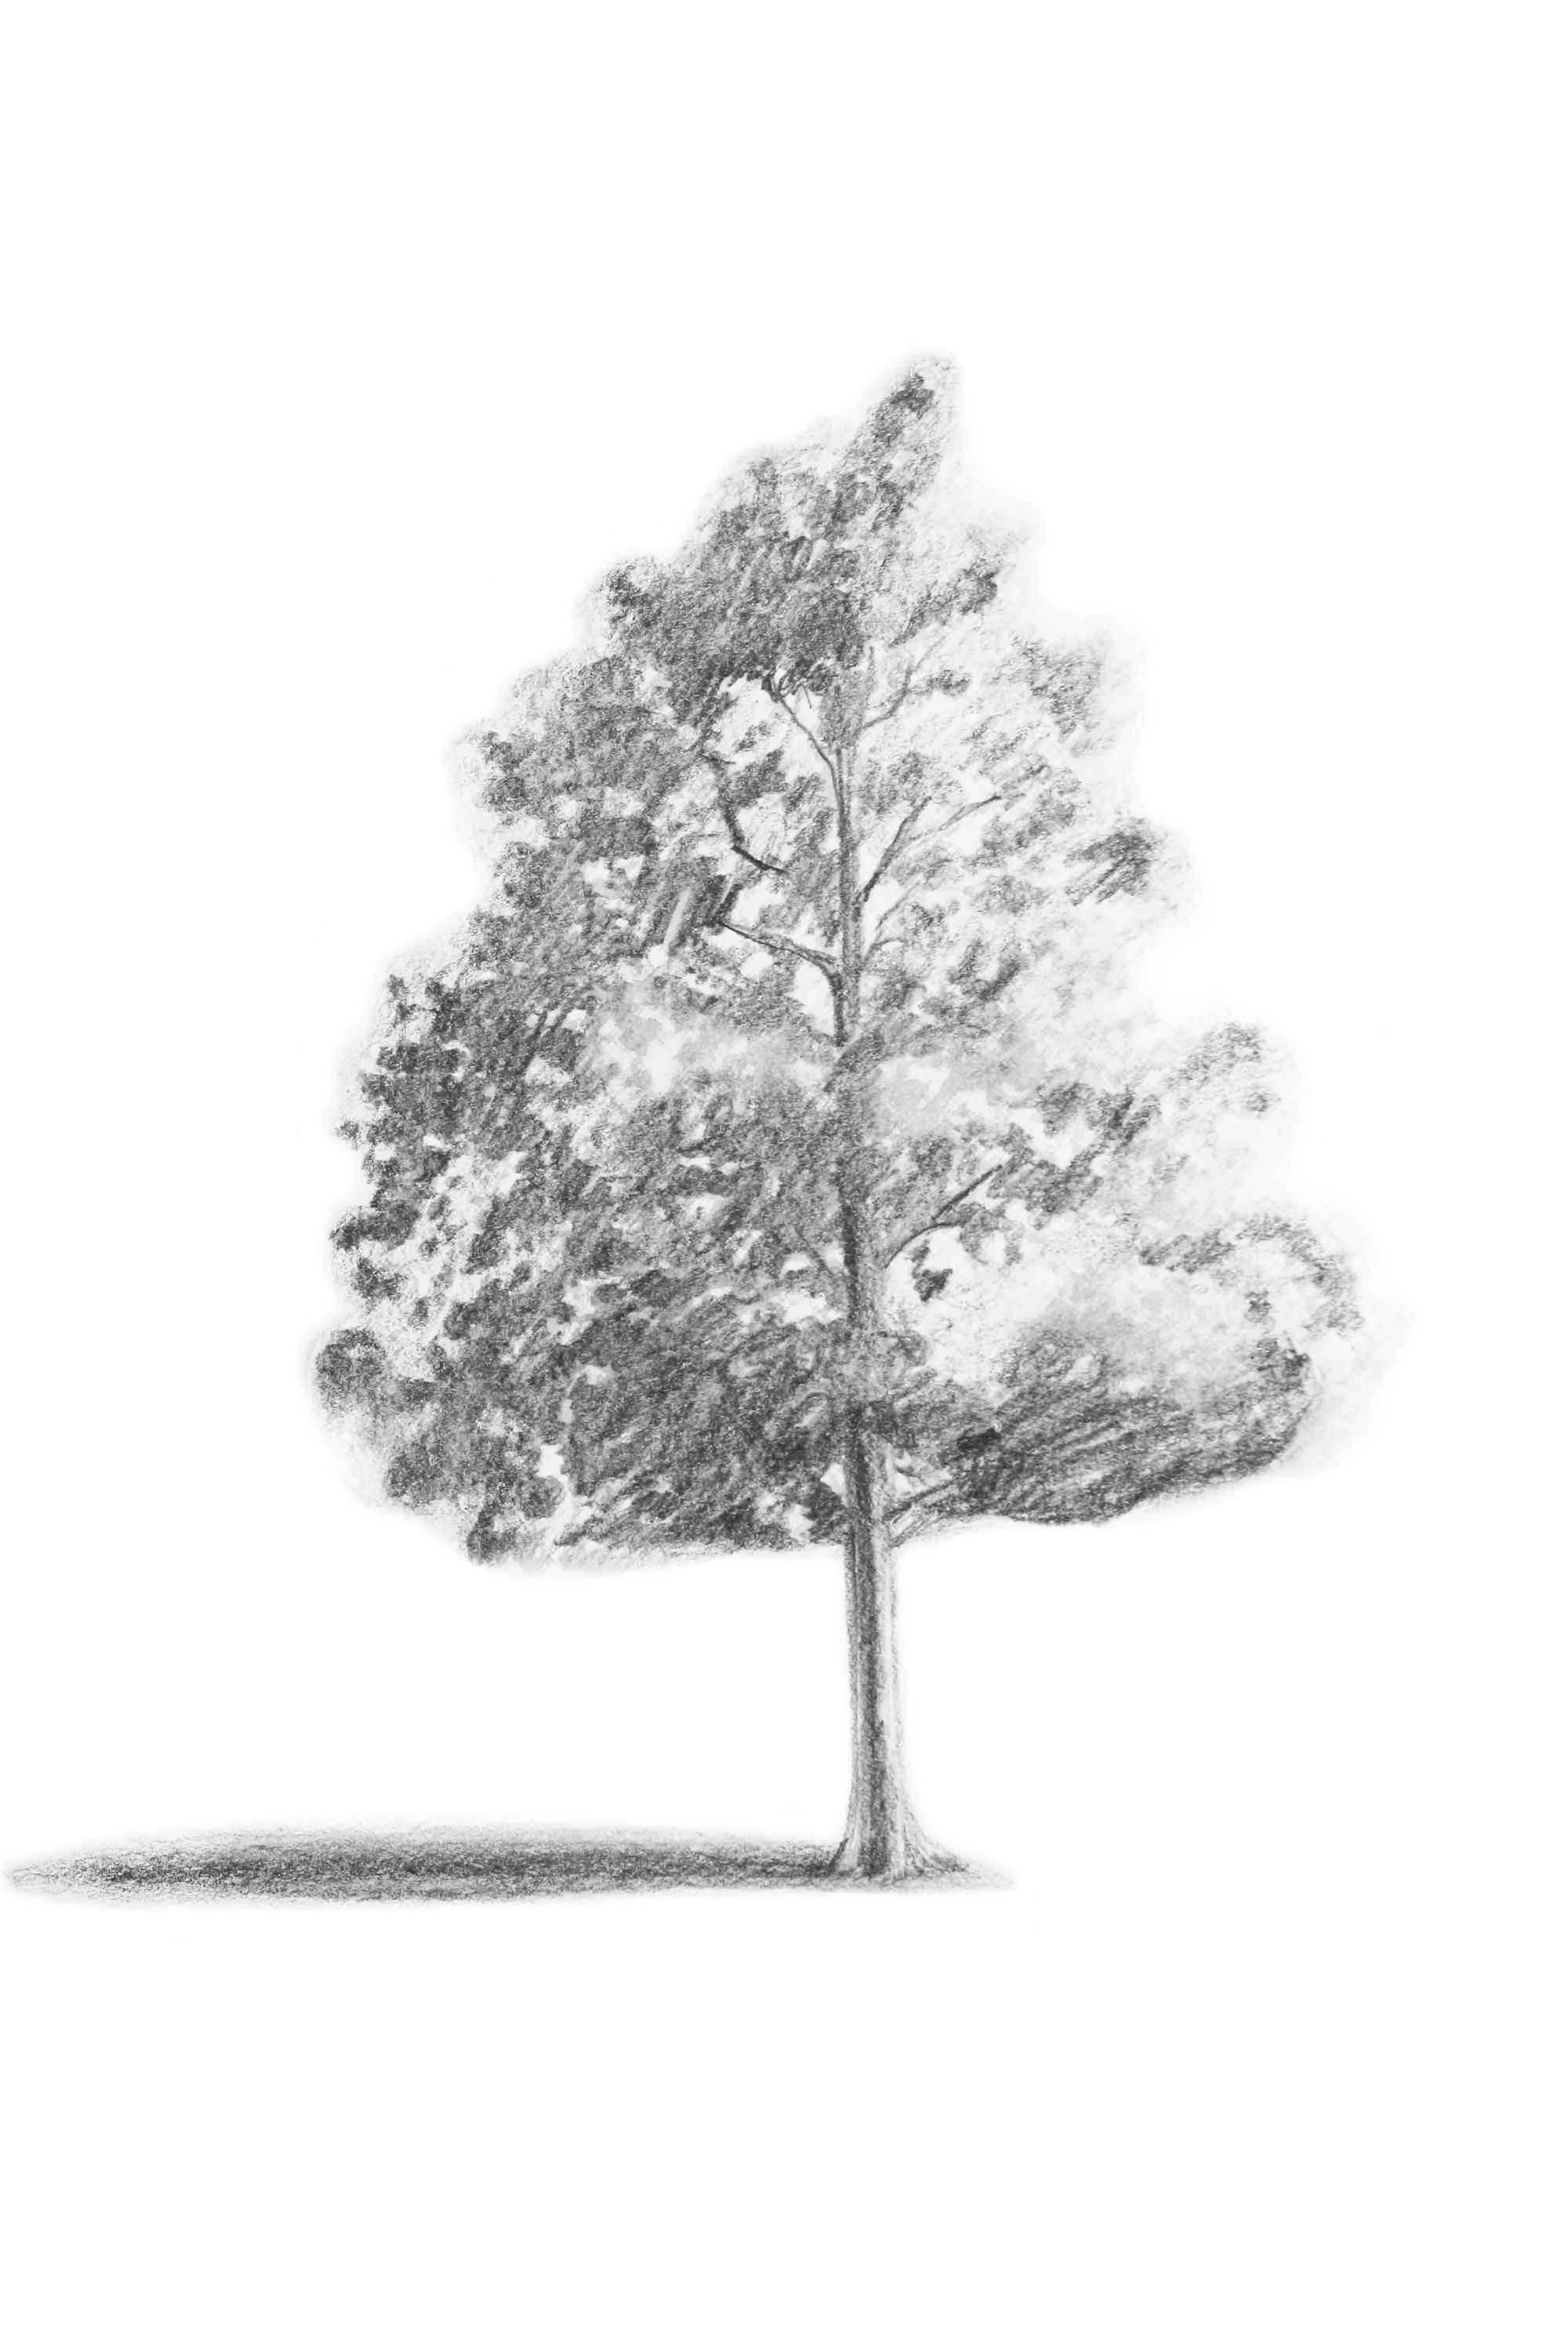 how to draw pine trees step by step easy pine tree drawing step by step trees step step by pine draw to how